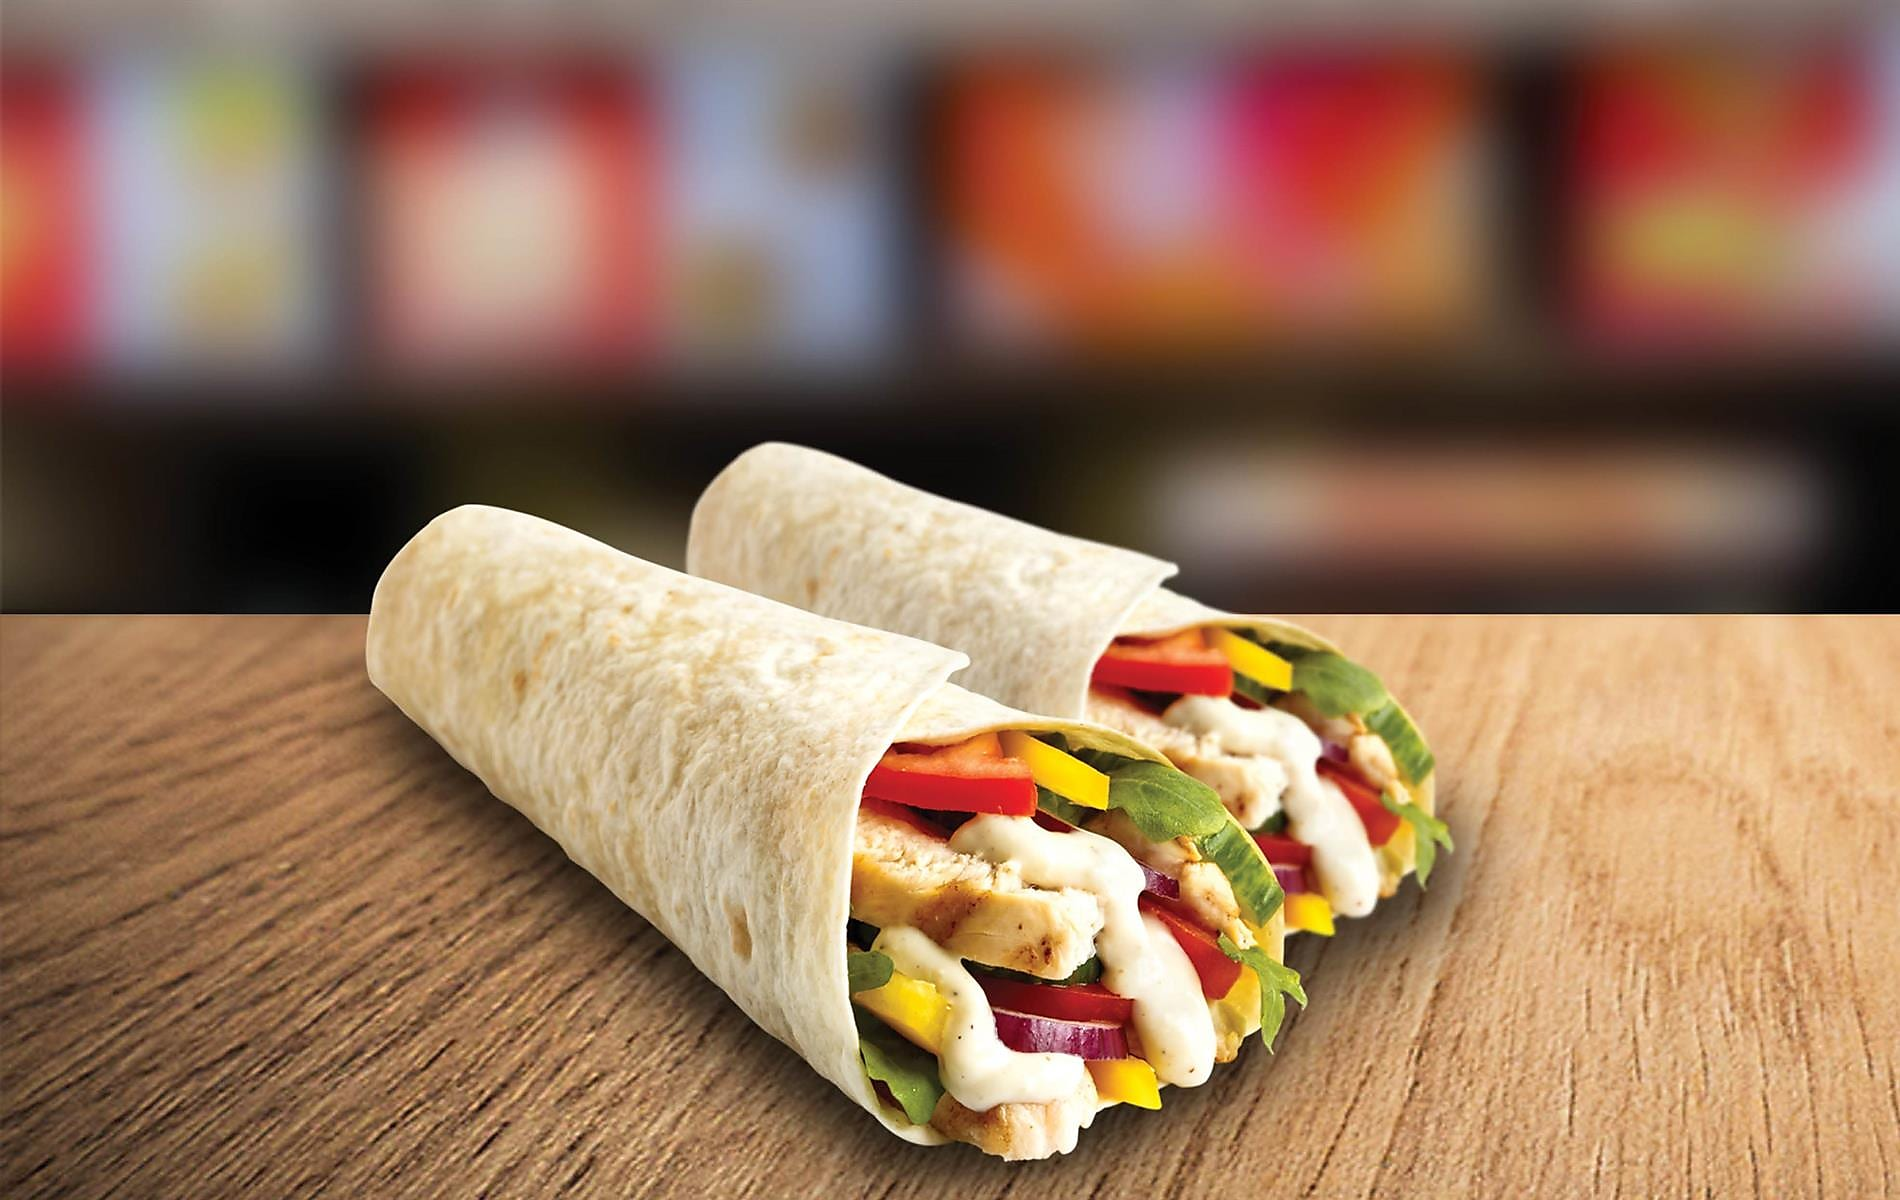 Double Deal Monday 2 x Chicken Wraps for N$60.00